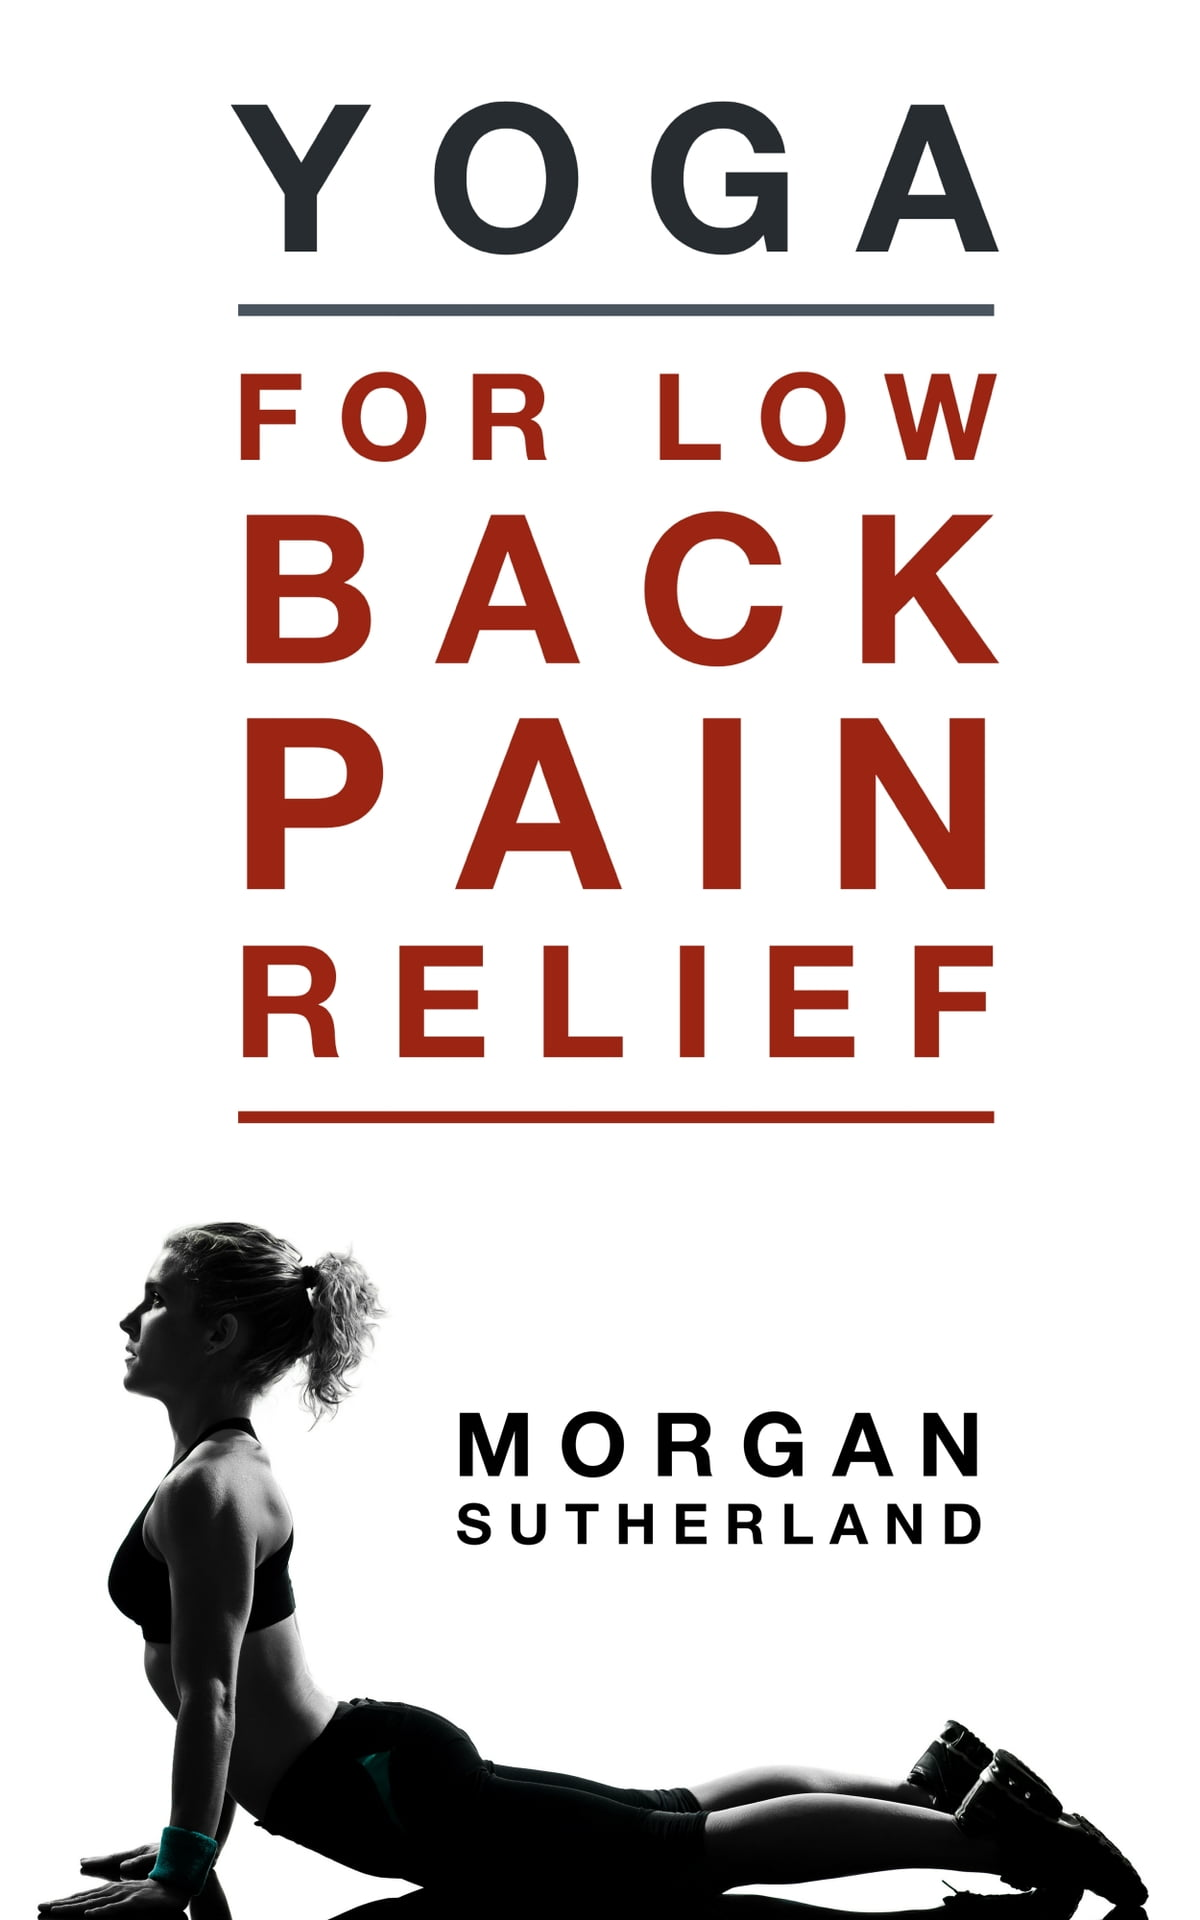 Yoga For Low Back Pain Relief 21 Restorative Yoga Poses For Back Pain Ebook By Morgan Sutherland 9781370360352 Rakuten Kobo United States